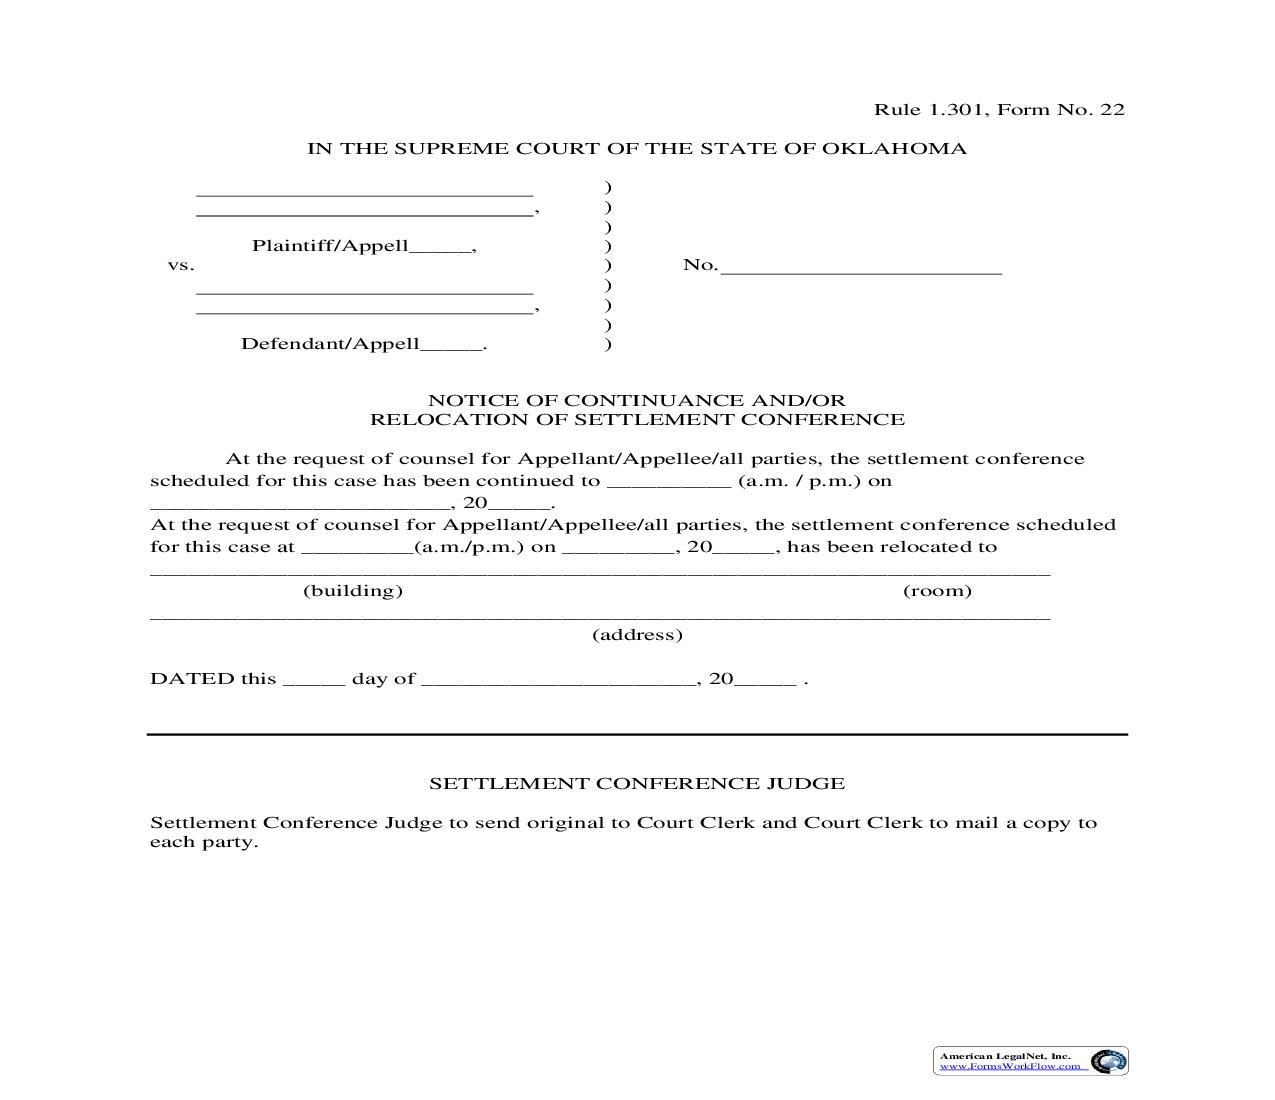 Notice Of Continuance And Or Relocation Of Settlement Conference {22} | Pdf Fpdf Doc Docx | Oklahoma